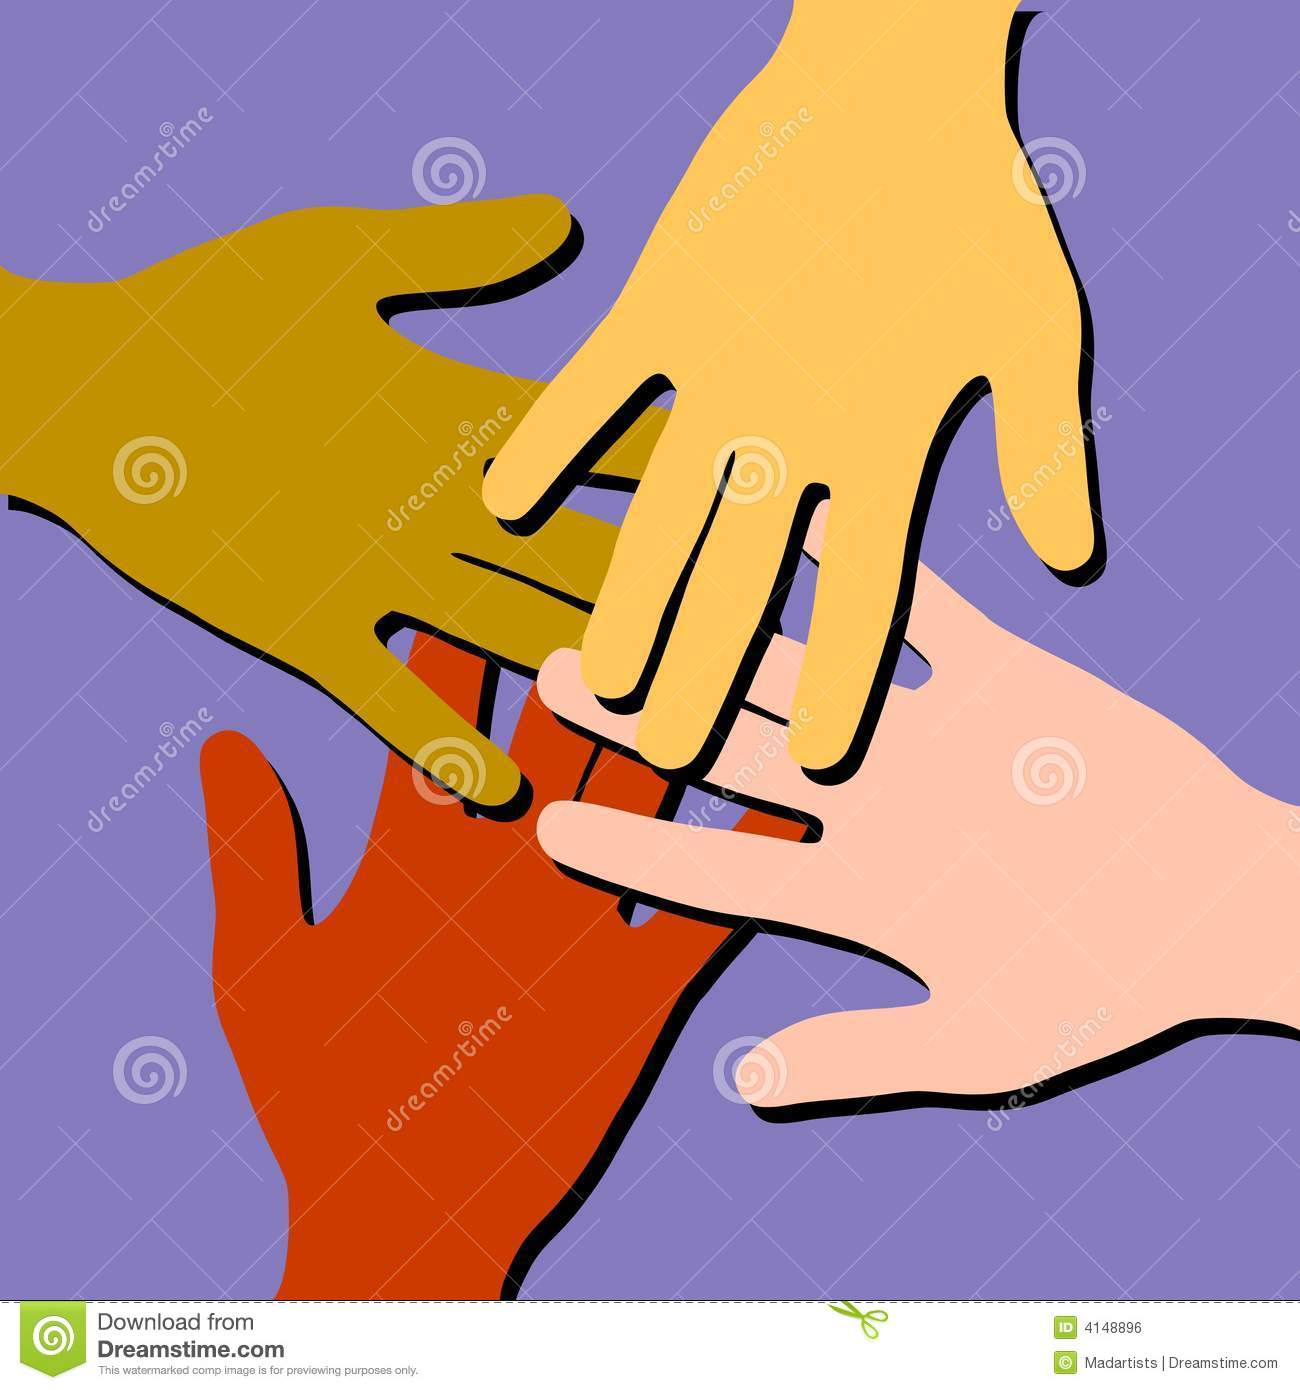 Helping Hands Clip Art